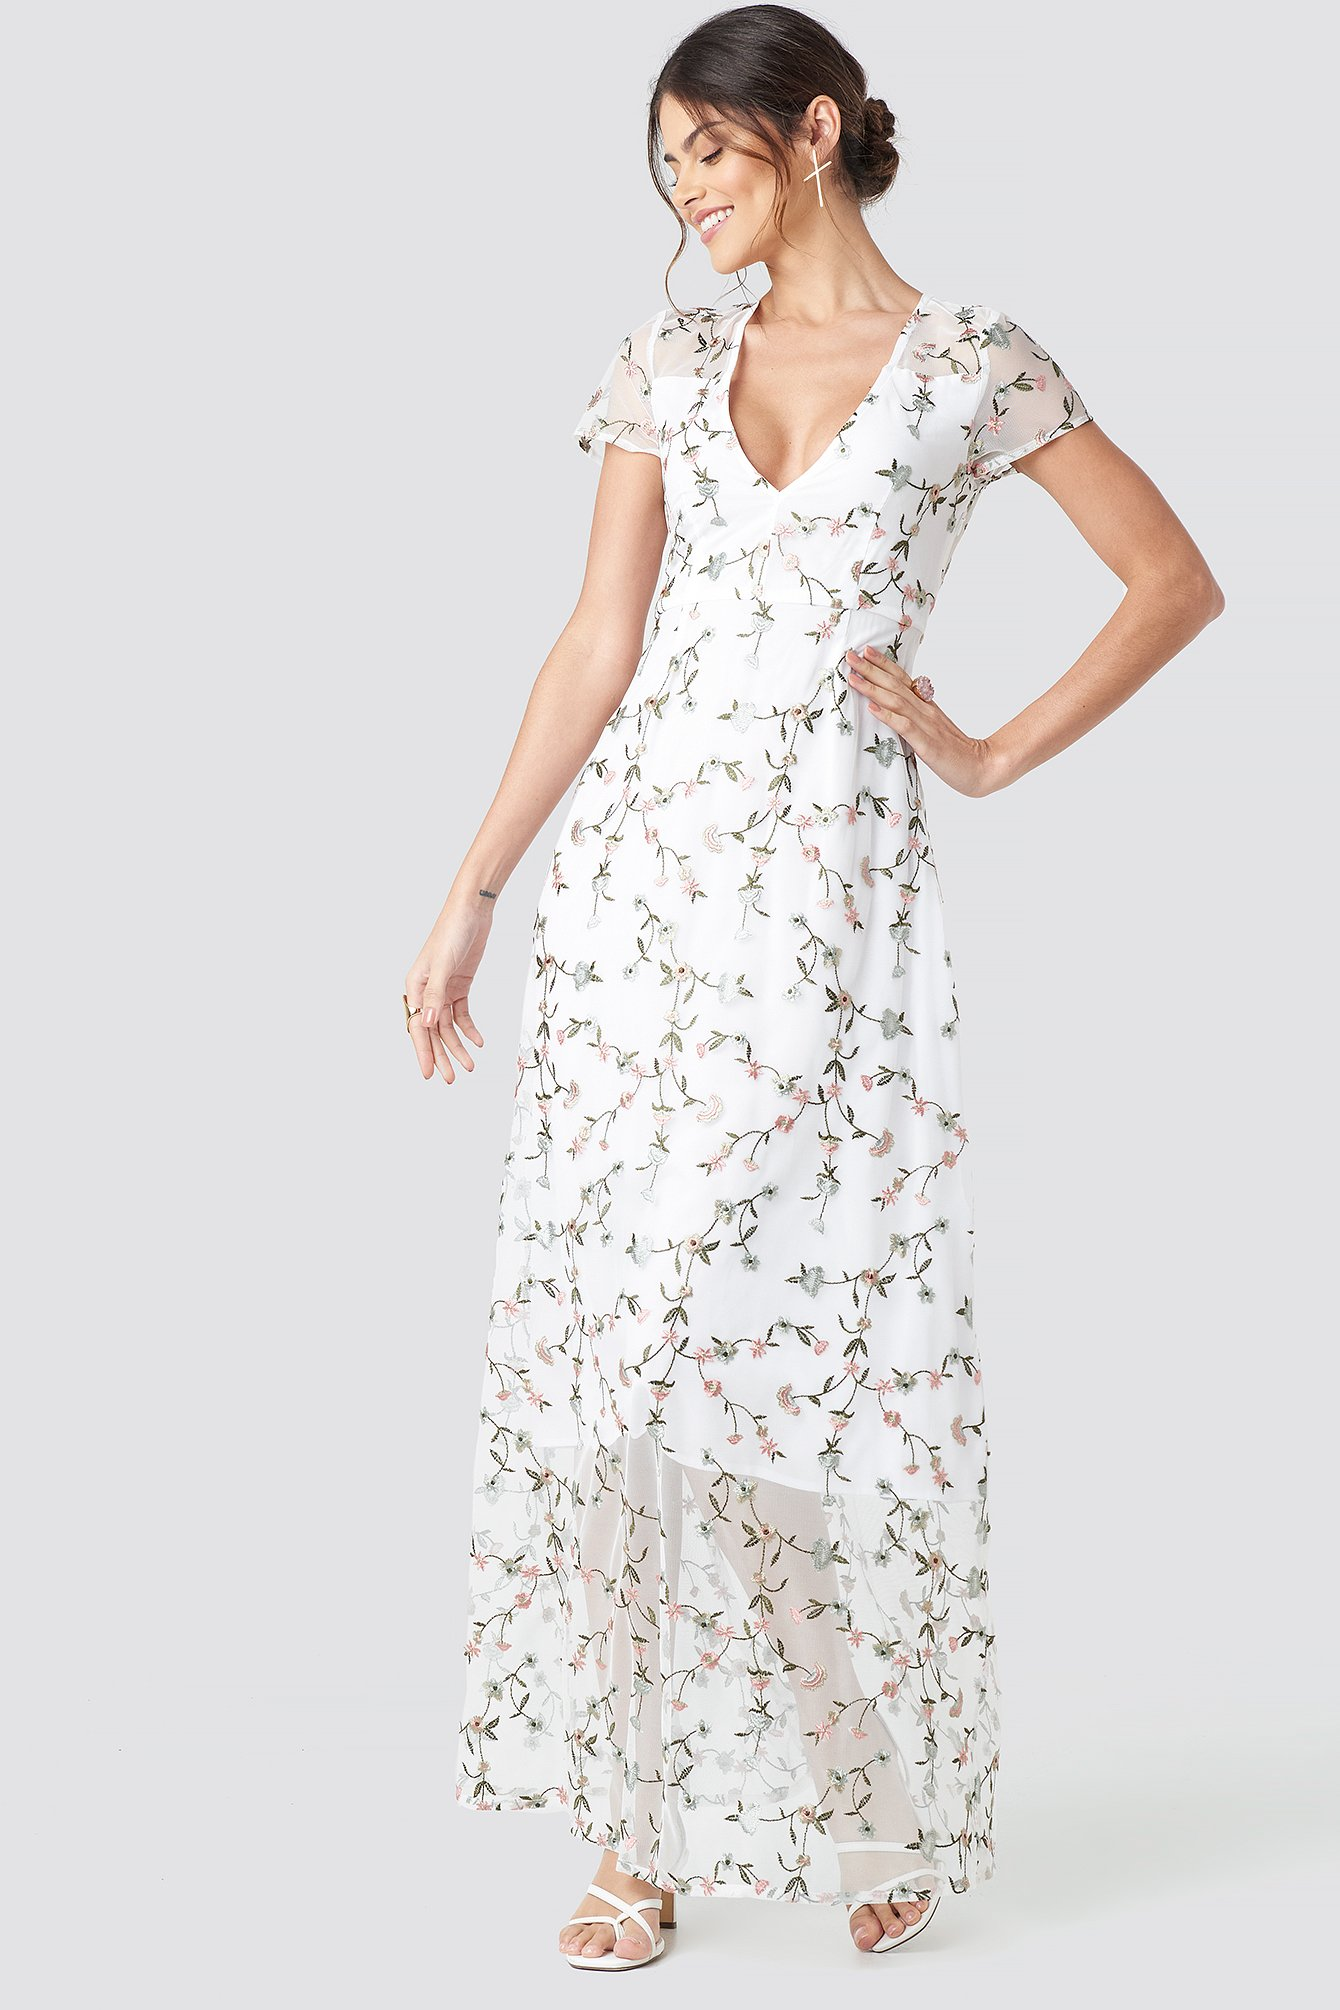 Flower Applique Sheer Maxi Dress NA-KD.COM